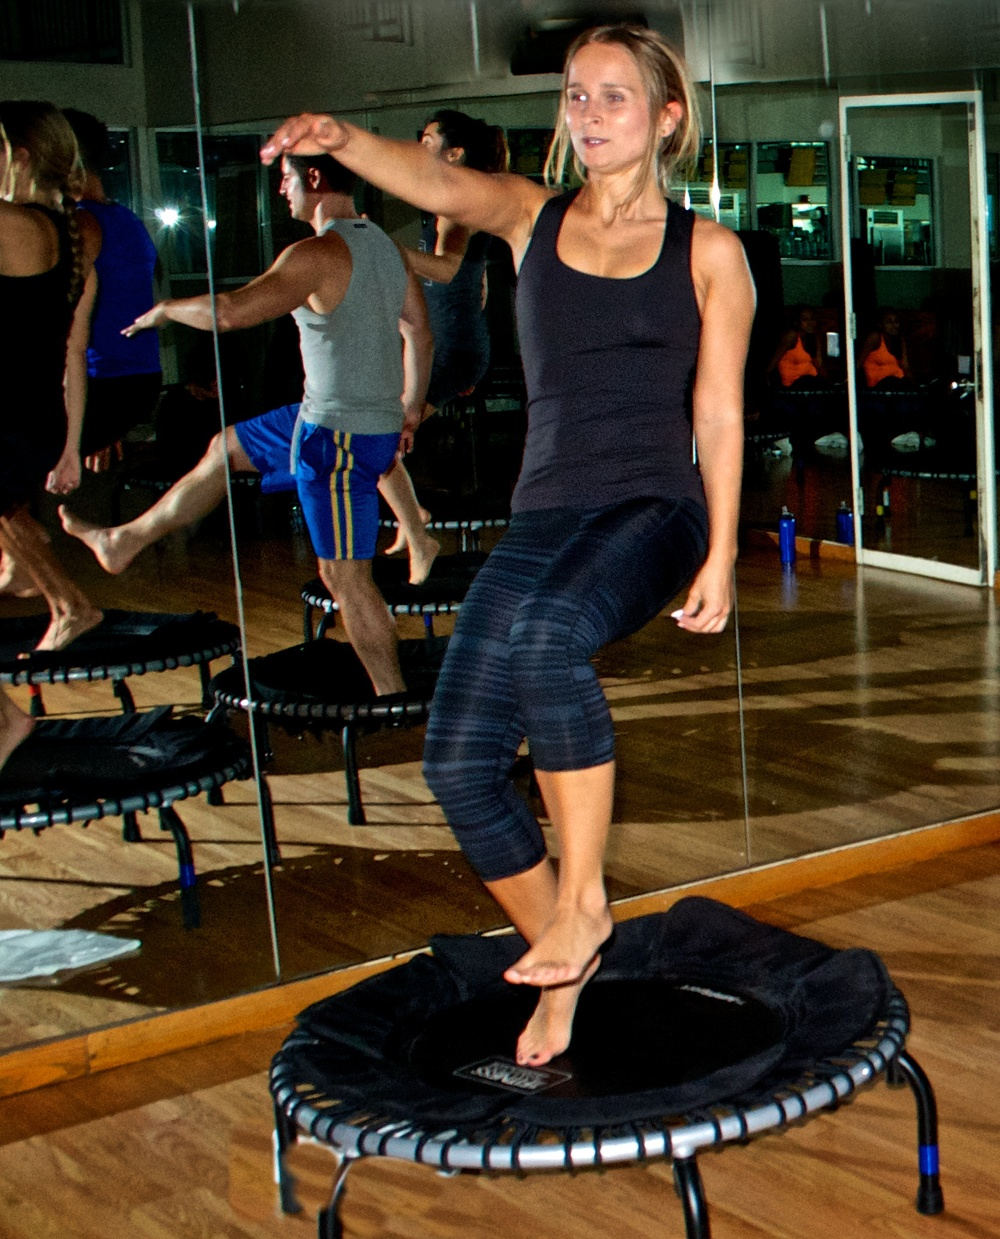 """I give 100% during this 50 min trampoline class. I leave feeling energized."" - Natalia"